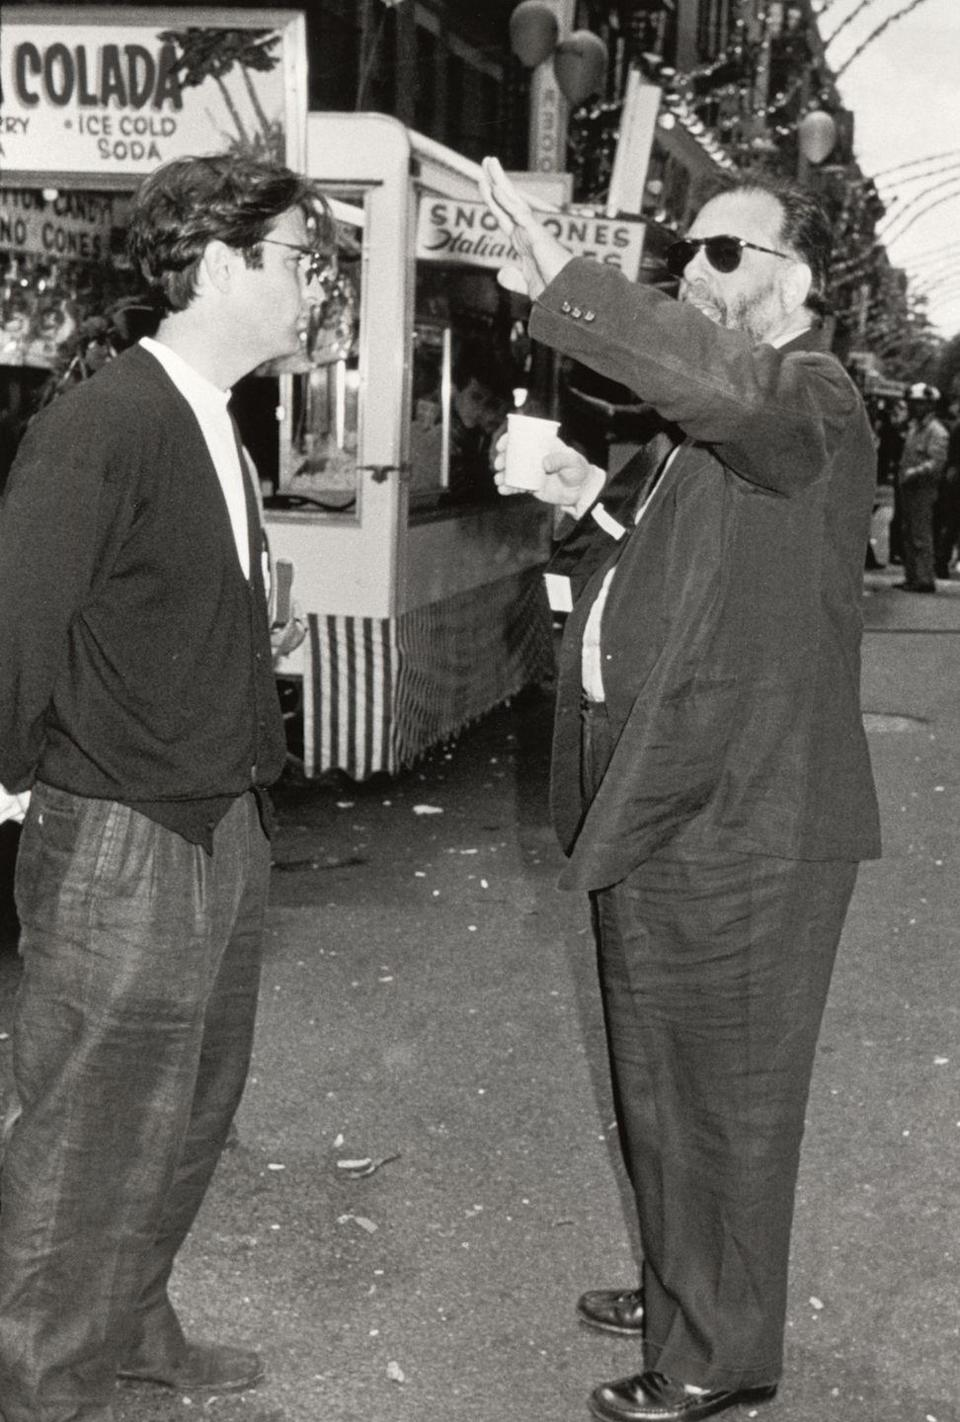 <p>Actor Andy Garcia and director Francis Ford Coppola are seen in Little Italy, New York City during the filming of the third Godfather movie. </p>